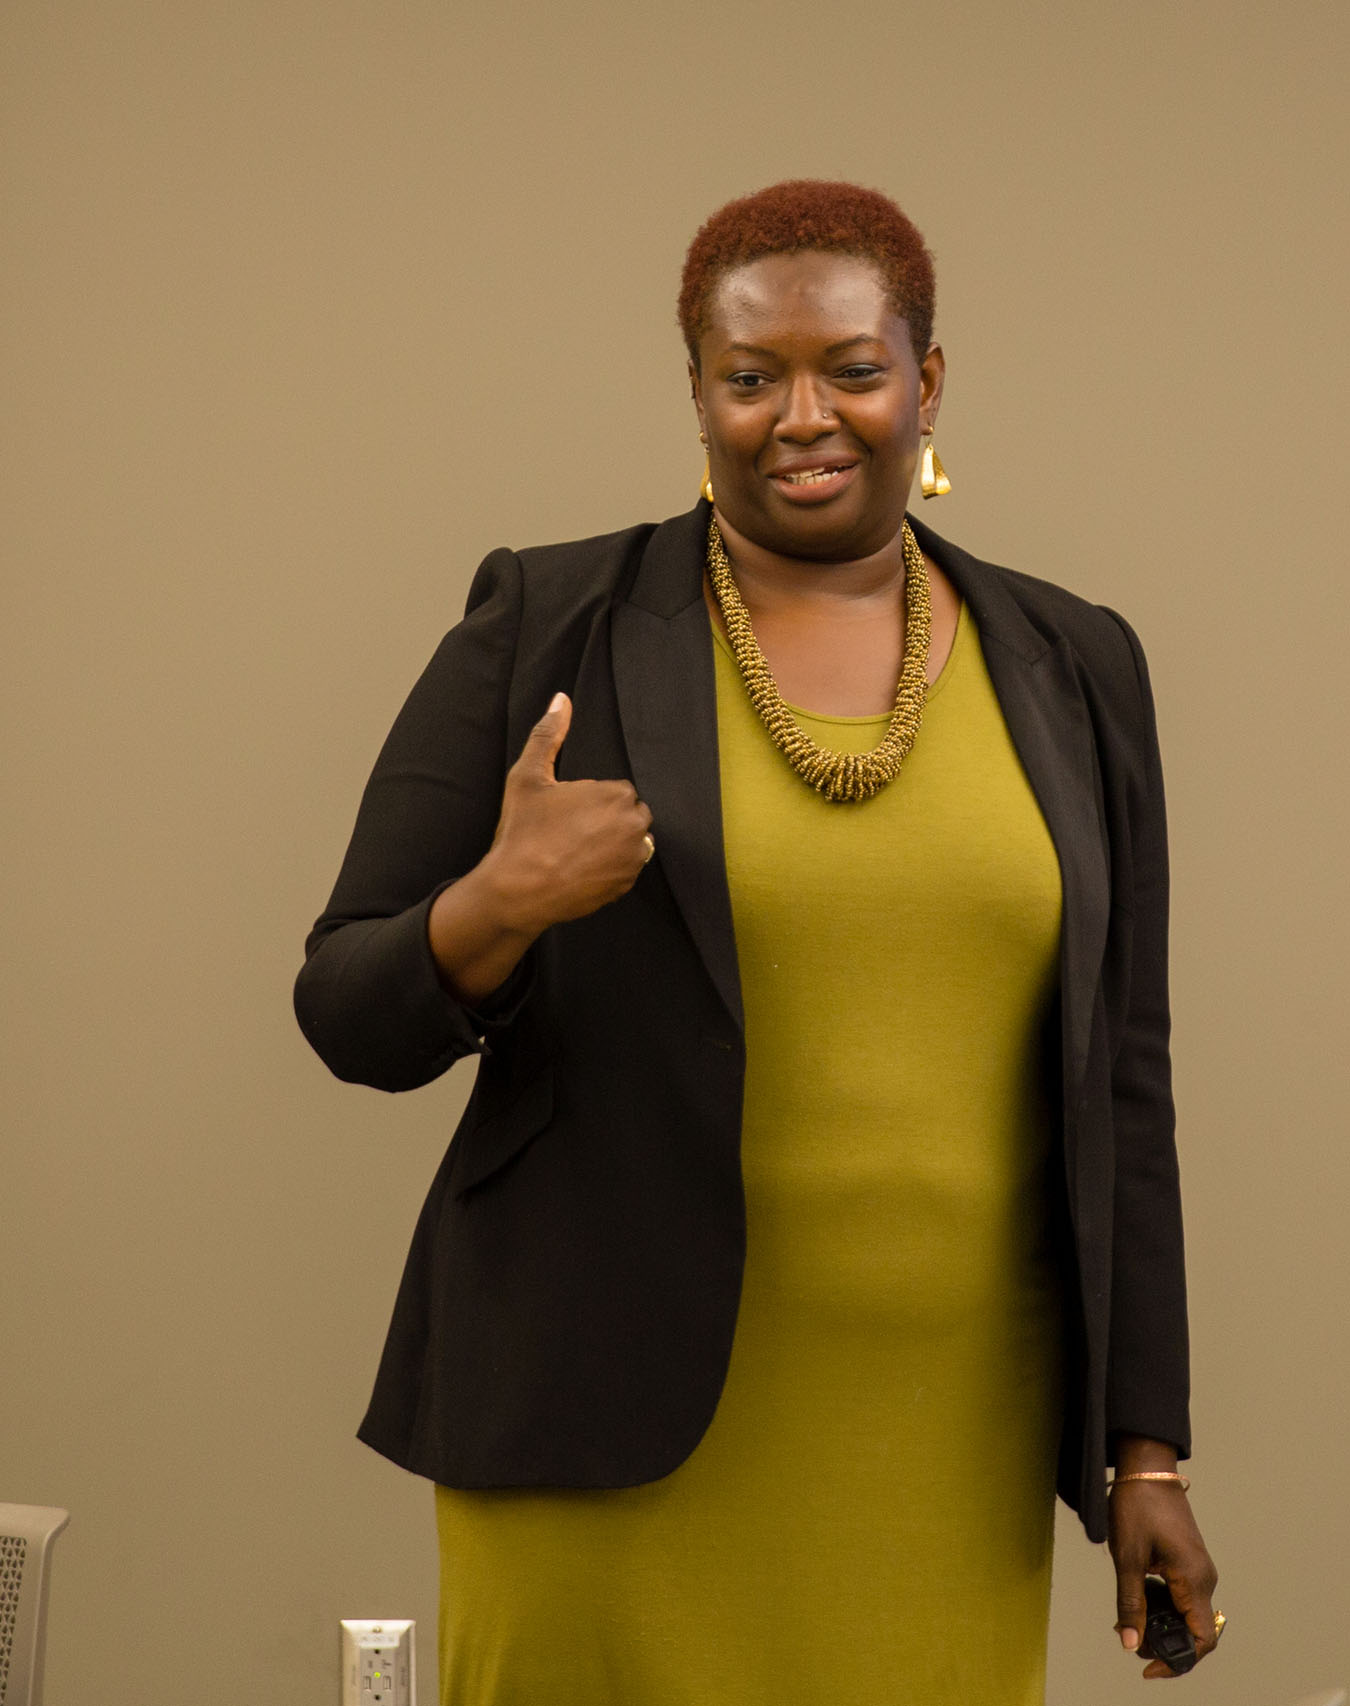 Dr. Kellie Mayfield, assistant professor of nutrition at Georgia State University, describes her community-based mixed methods research.